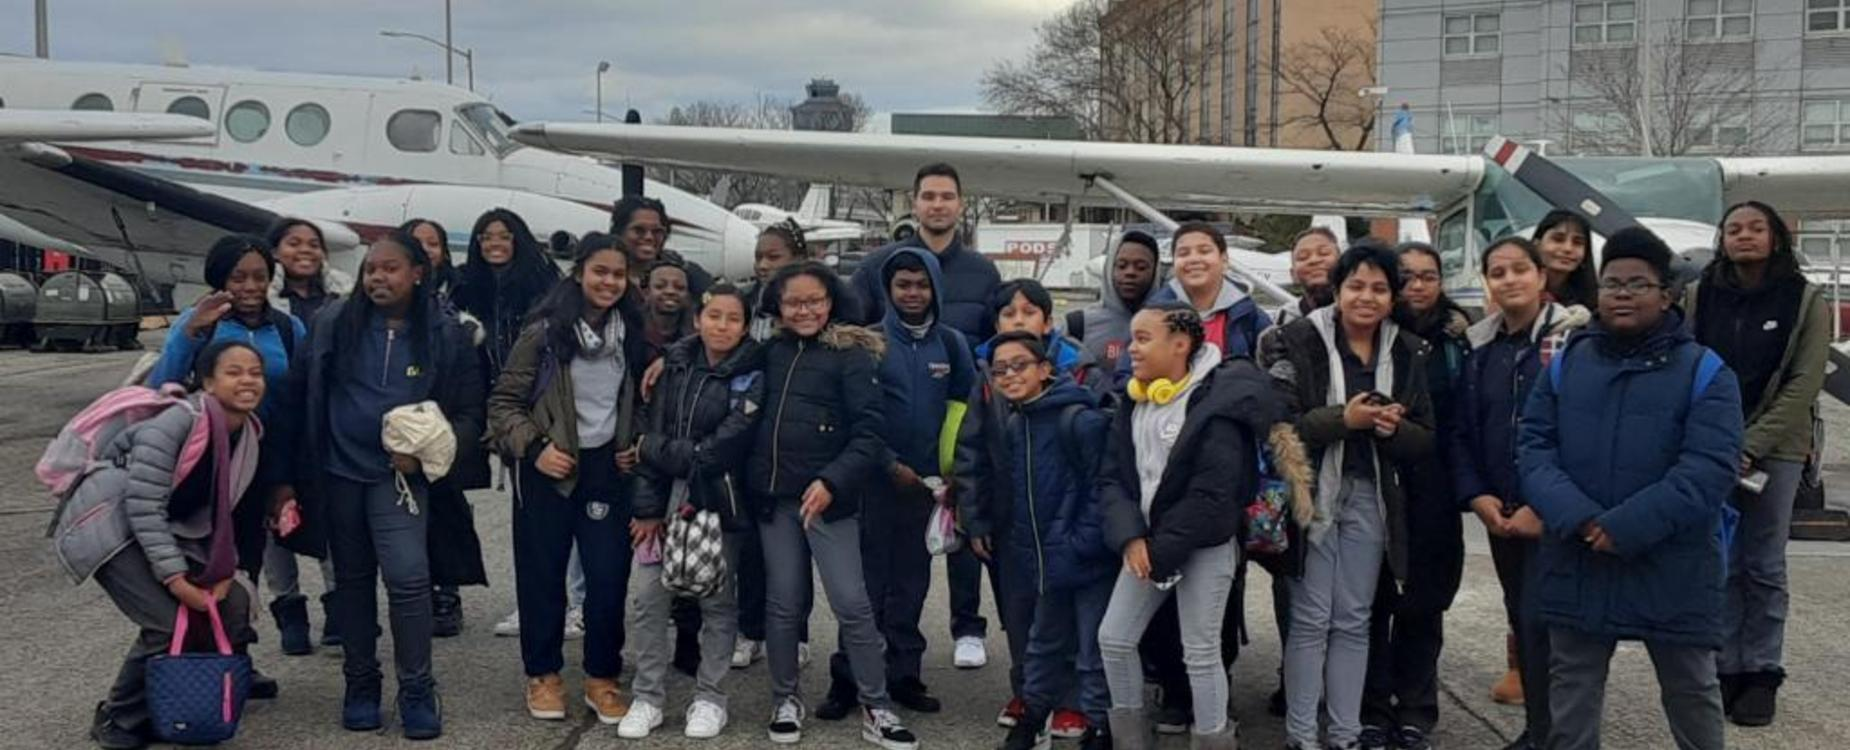 six graders on a college trip to Vaughn College in front of an airplane